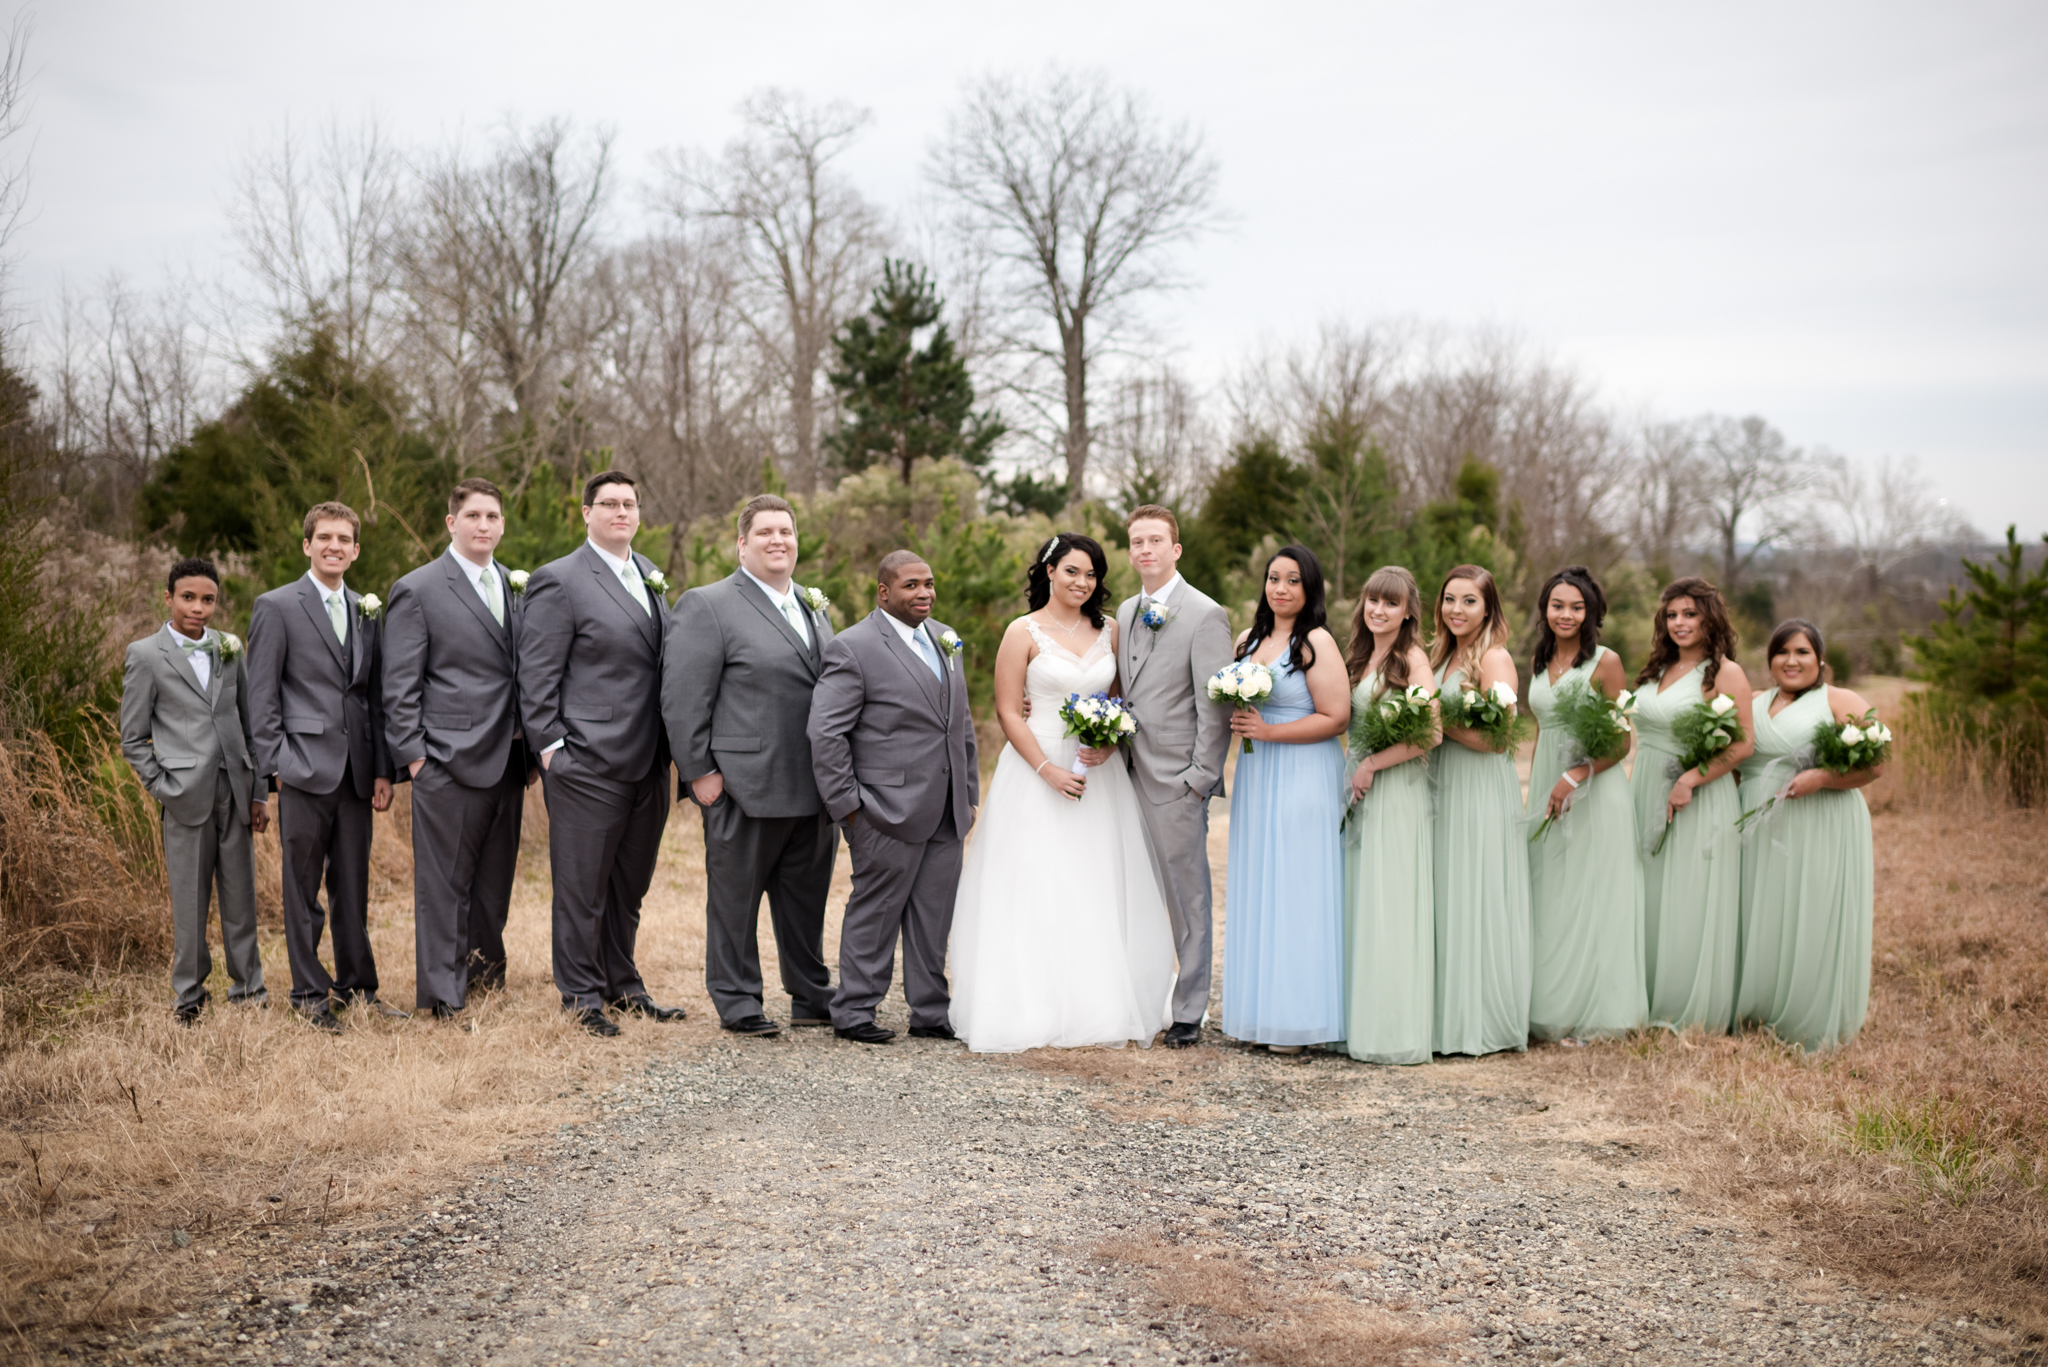 gibsonville-wedding-photography-010.jpg